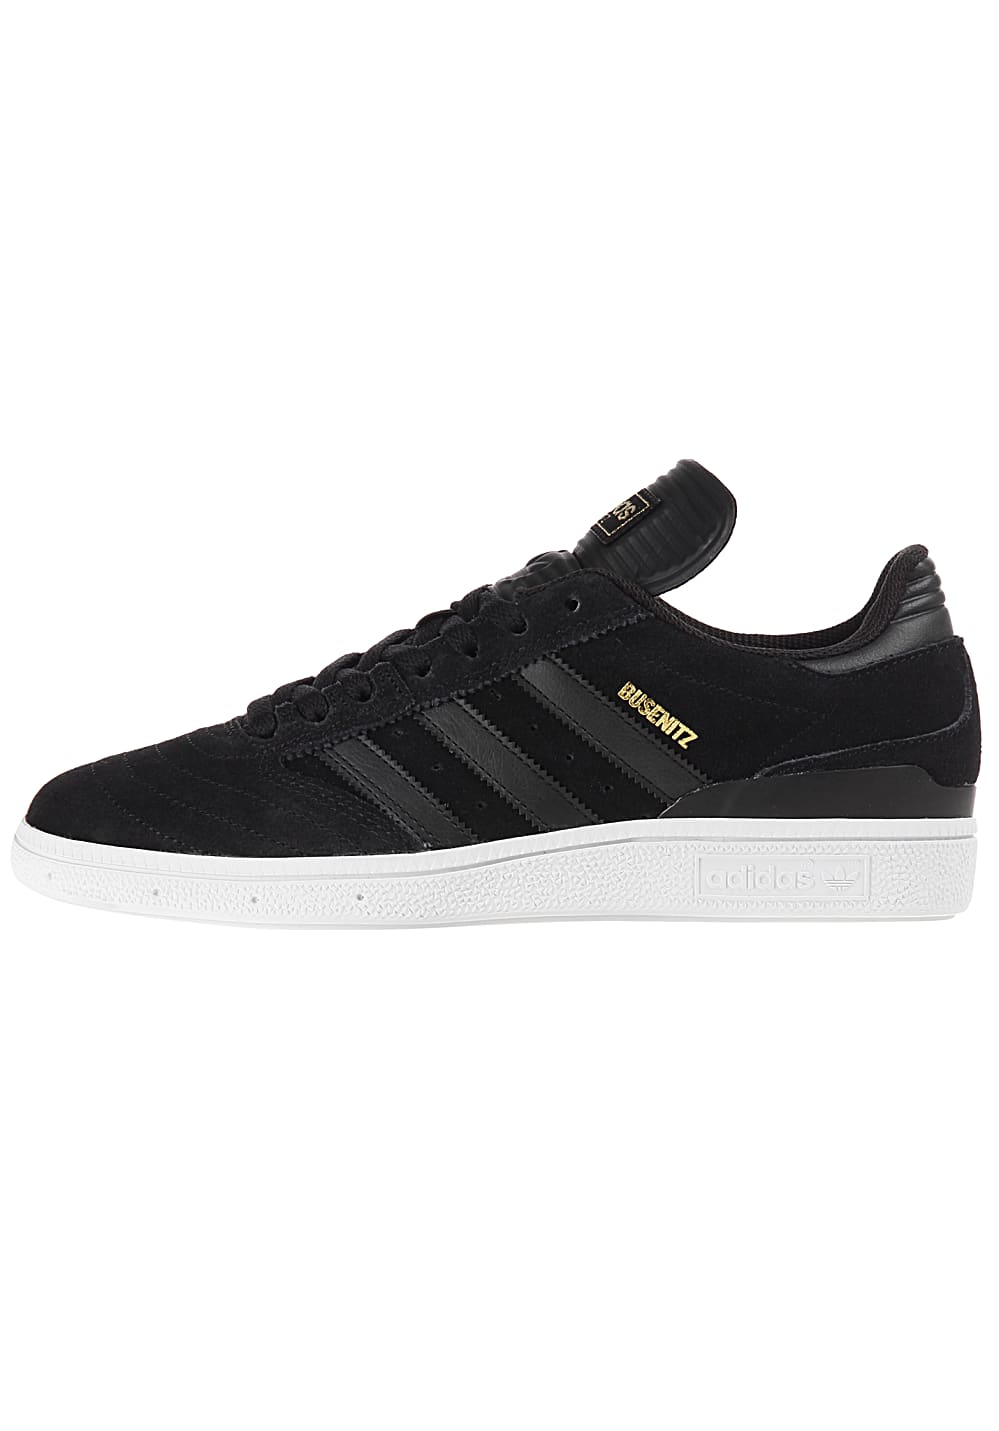 Buy Adidas Busenitz Pro Only $40 Today | RunRepeat